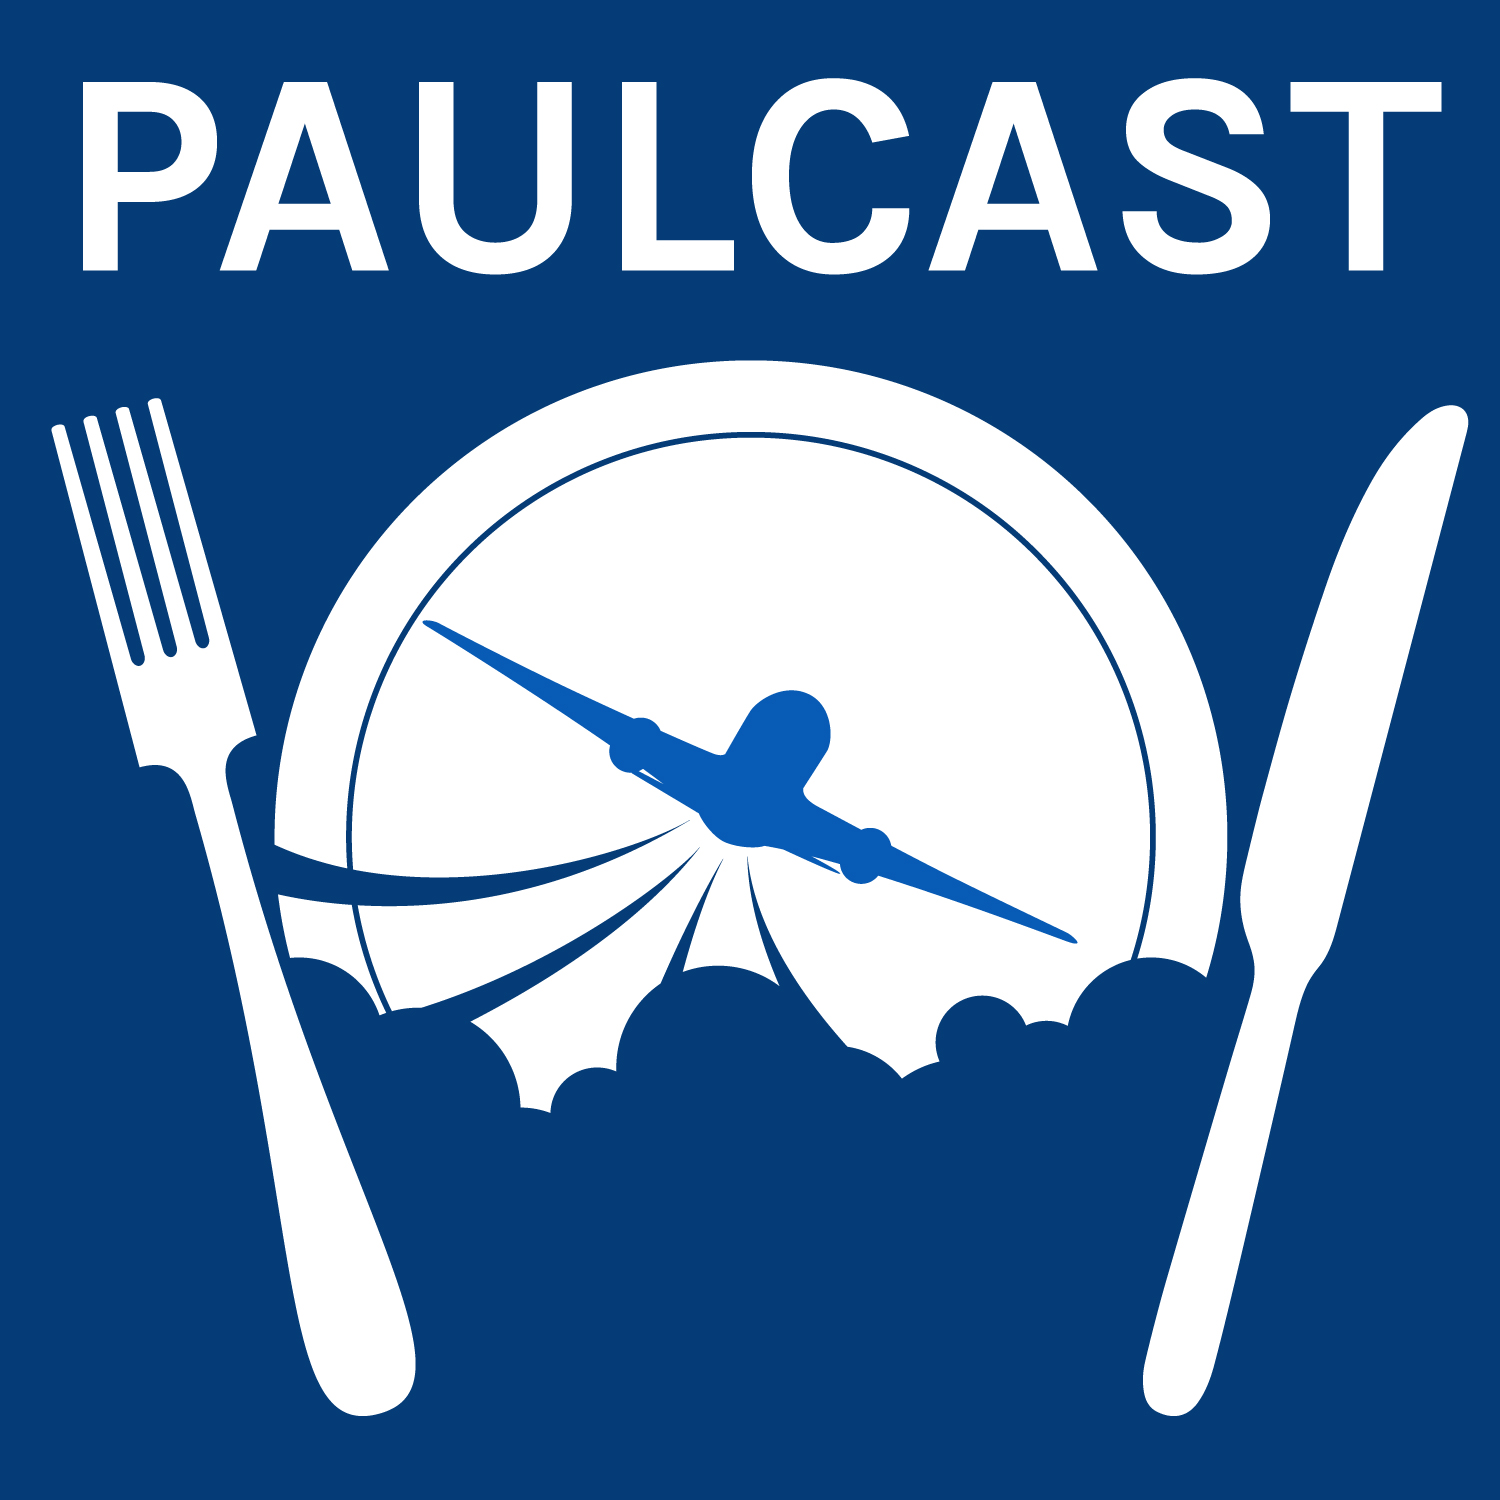 The Food and Travel PaulCast